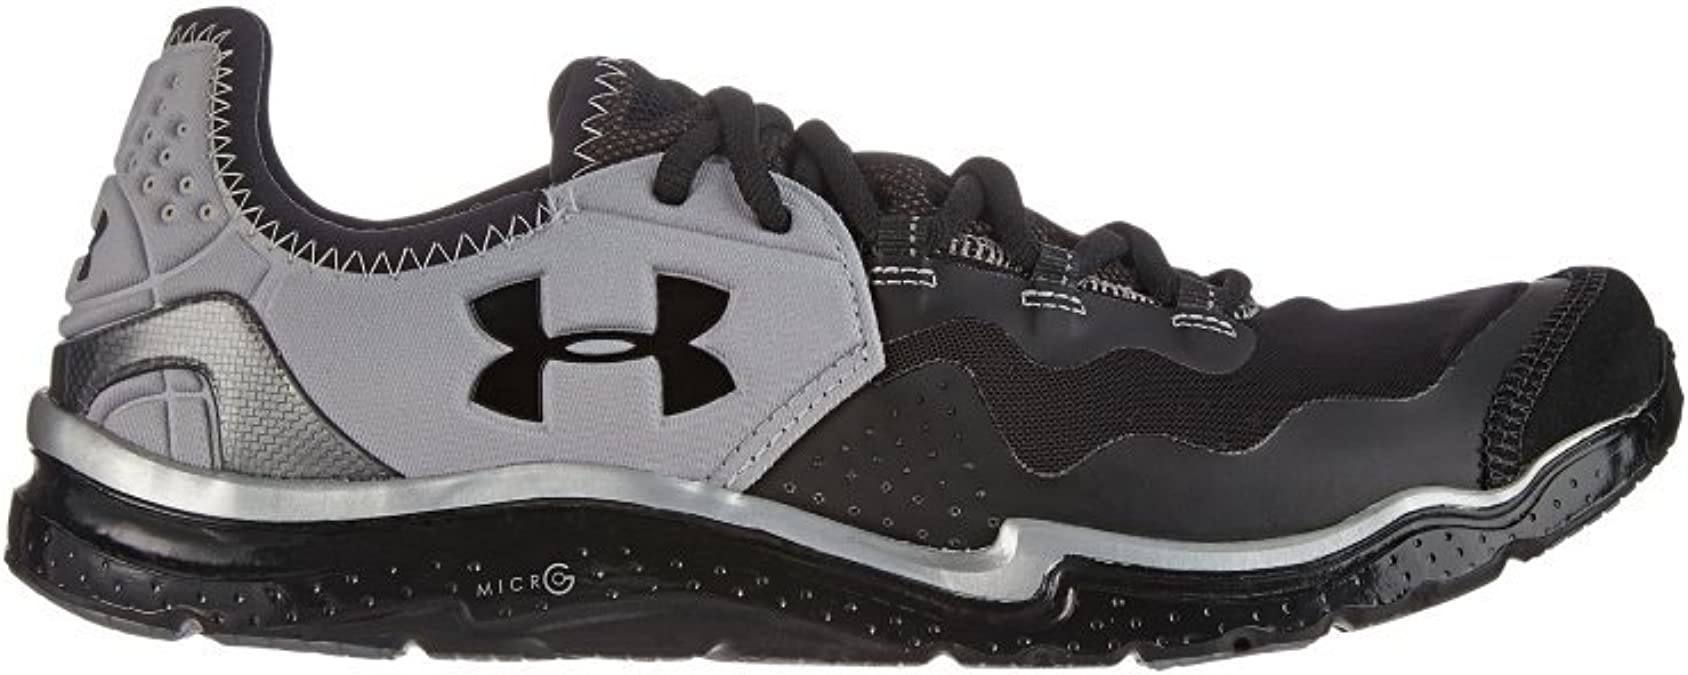 UNDER ARMOUR - Zapatillas Running Hombre UA Charge RC 2 - 1235671-004 - 11.5: Amazon.es: Zapatos y complementos